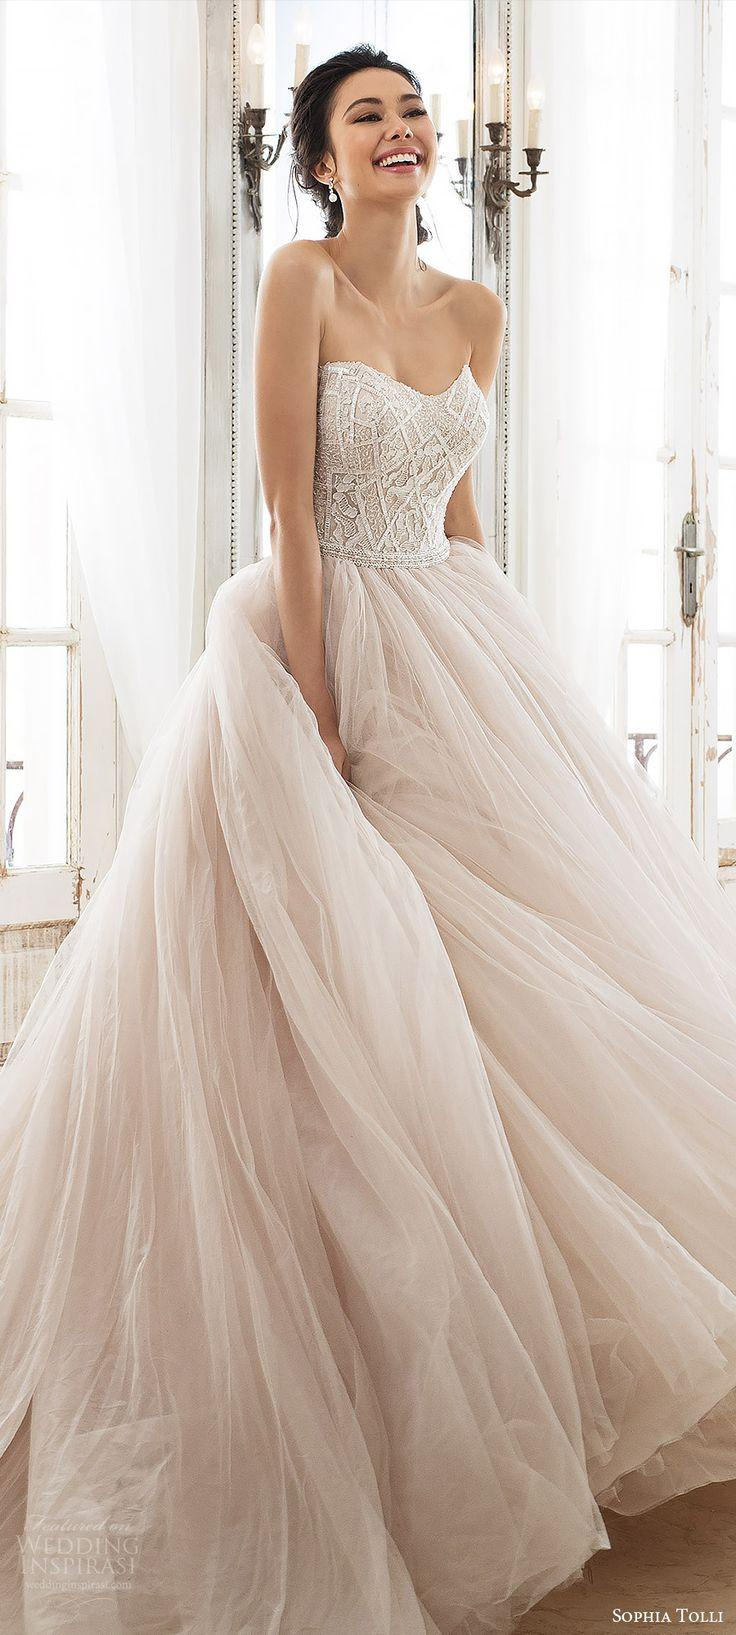 Boda - 2018 Wedding Dress Trends To Love Part 1 — Silhouettes And Sleeves